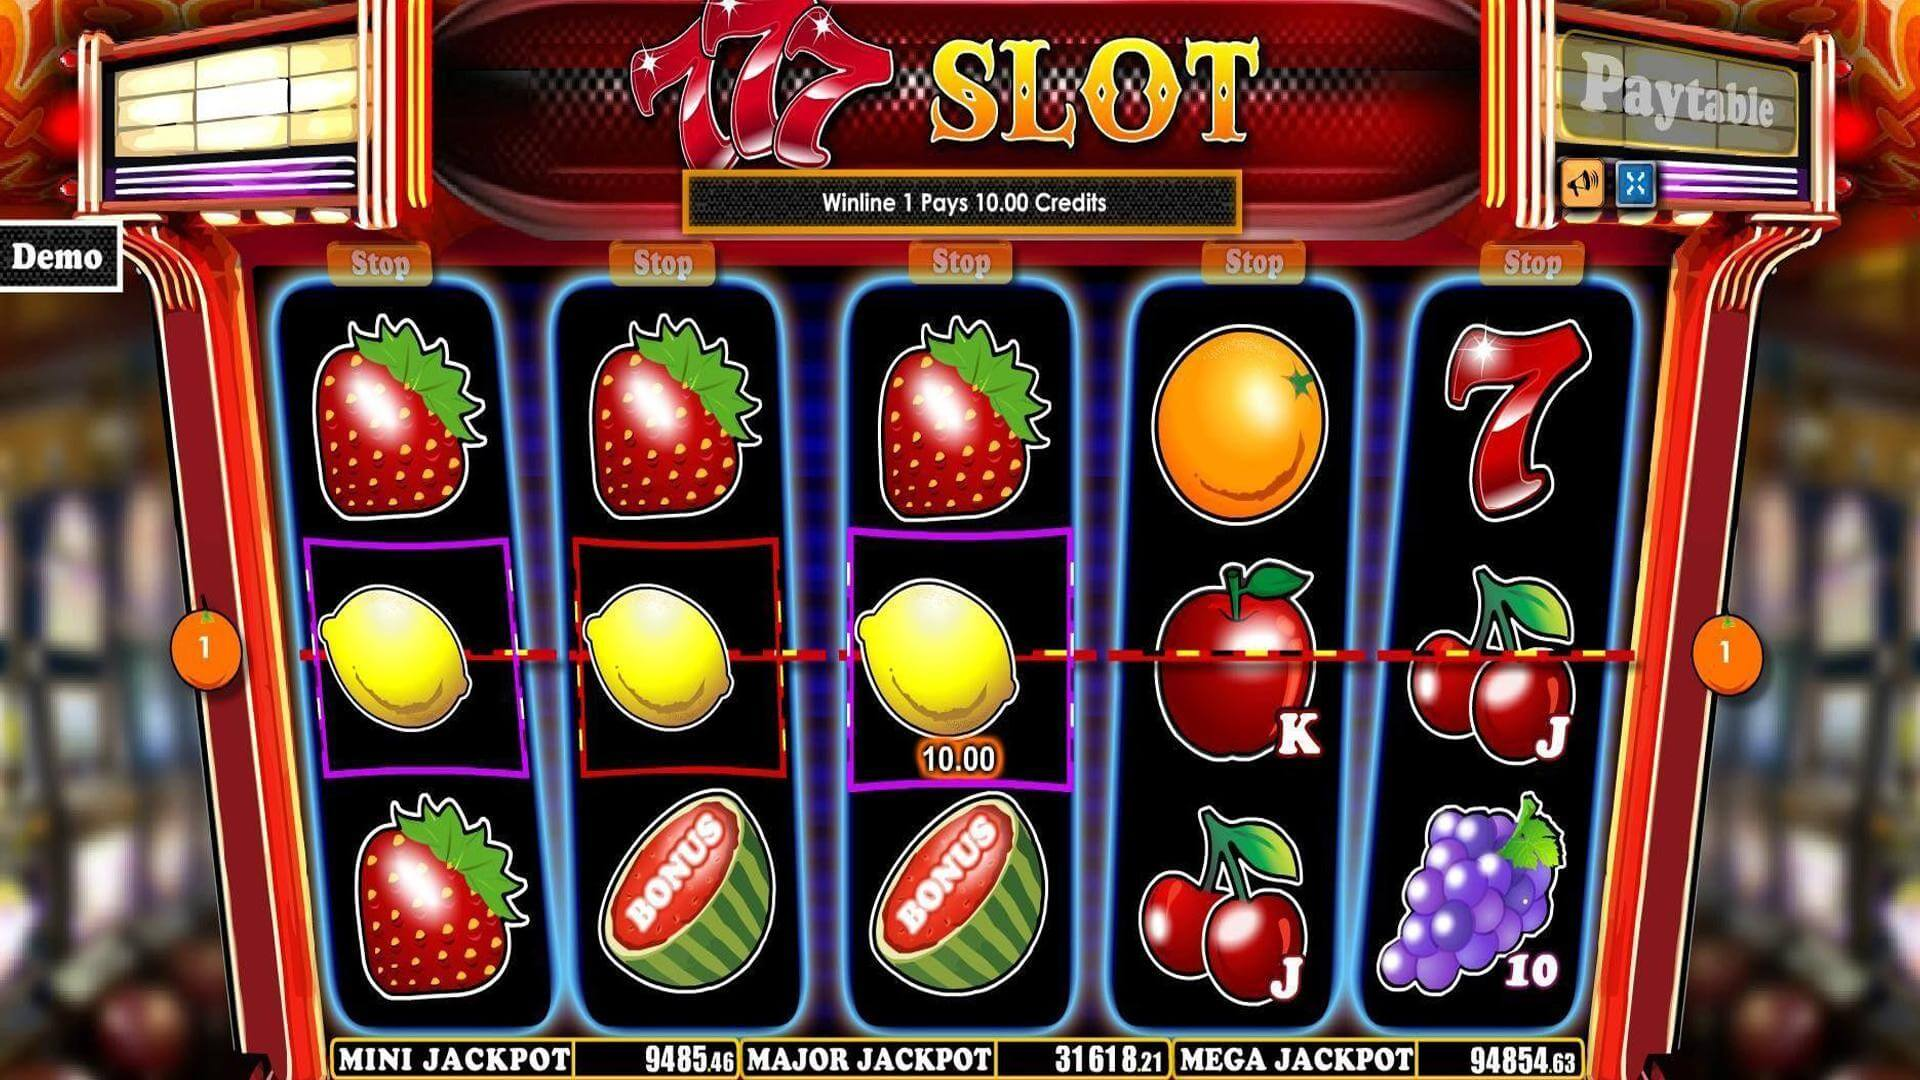 How To Win At Slots: The Aspects Of Effective Game Strategies